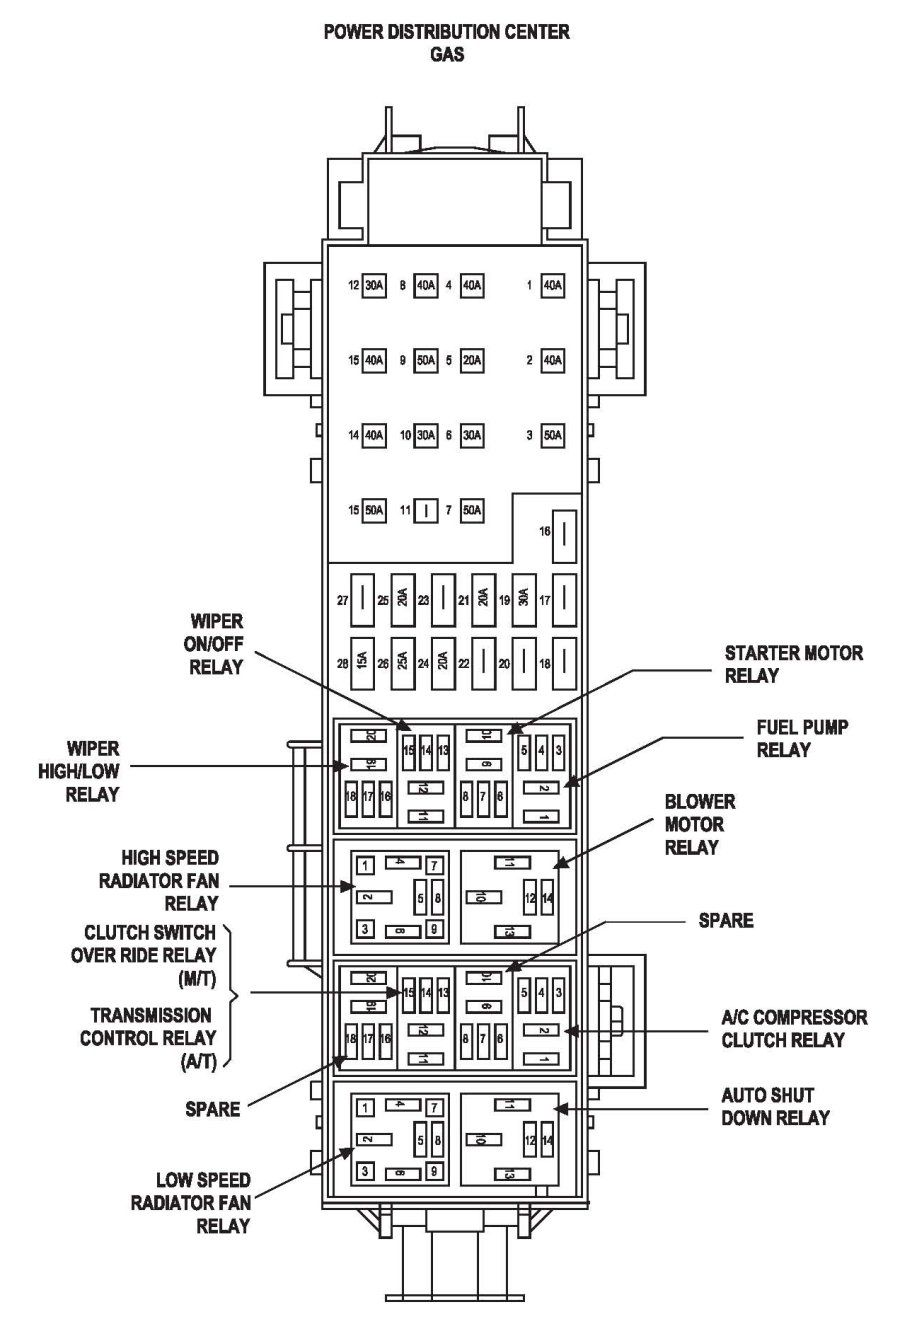 Fuse Box Diagram Blog About Wiring Diagrams 2006 Ford F 150 Jeep Liberty Image Details